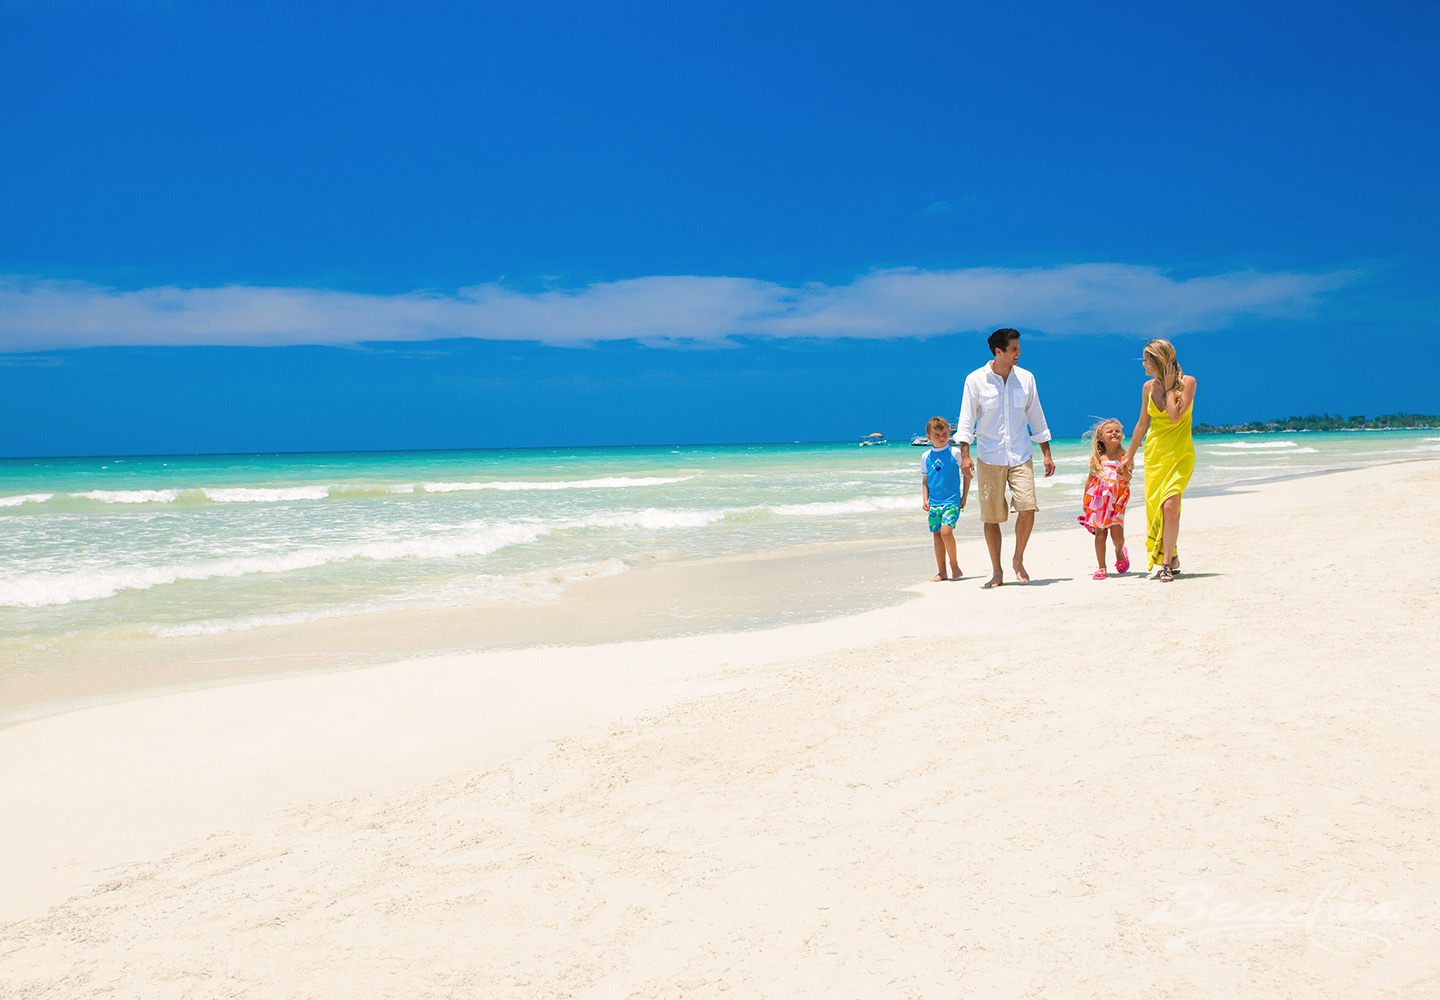 Travel Agency All-Inclusive Resort Beaches Negril 018